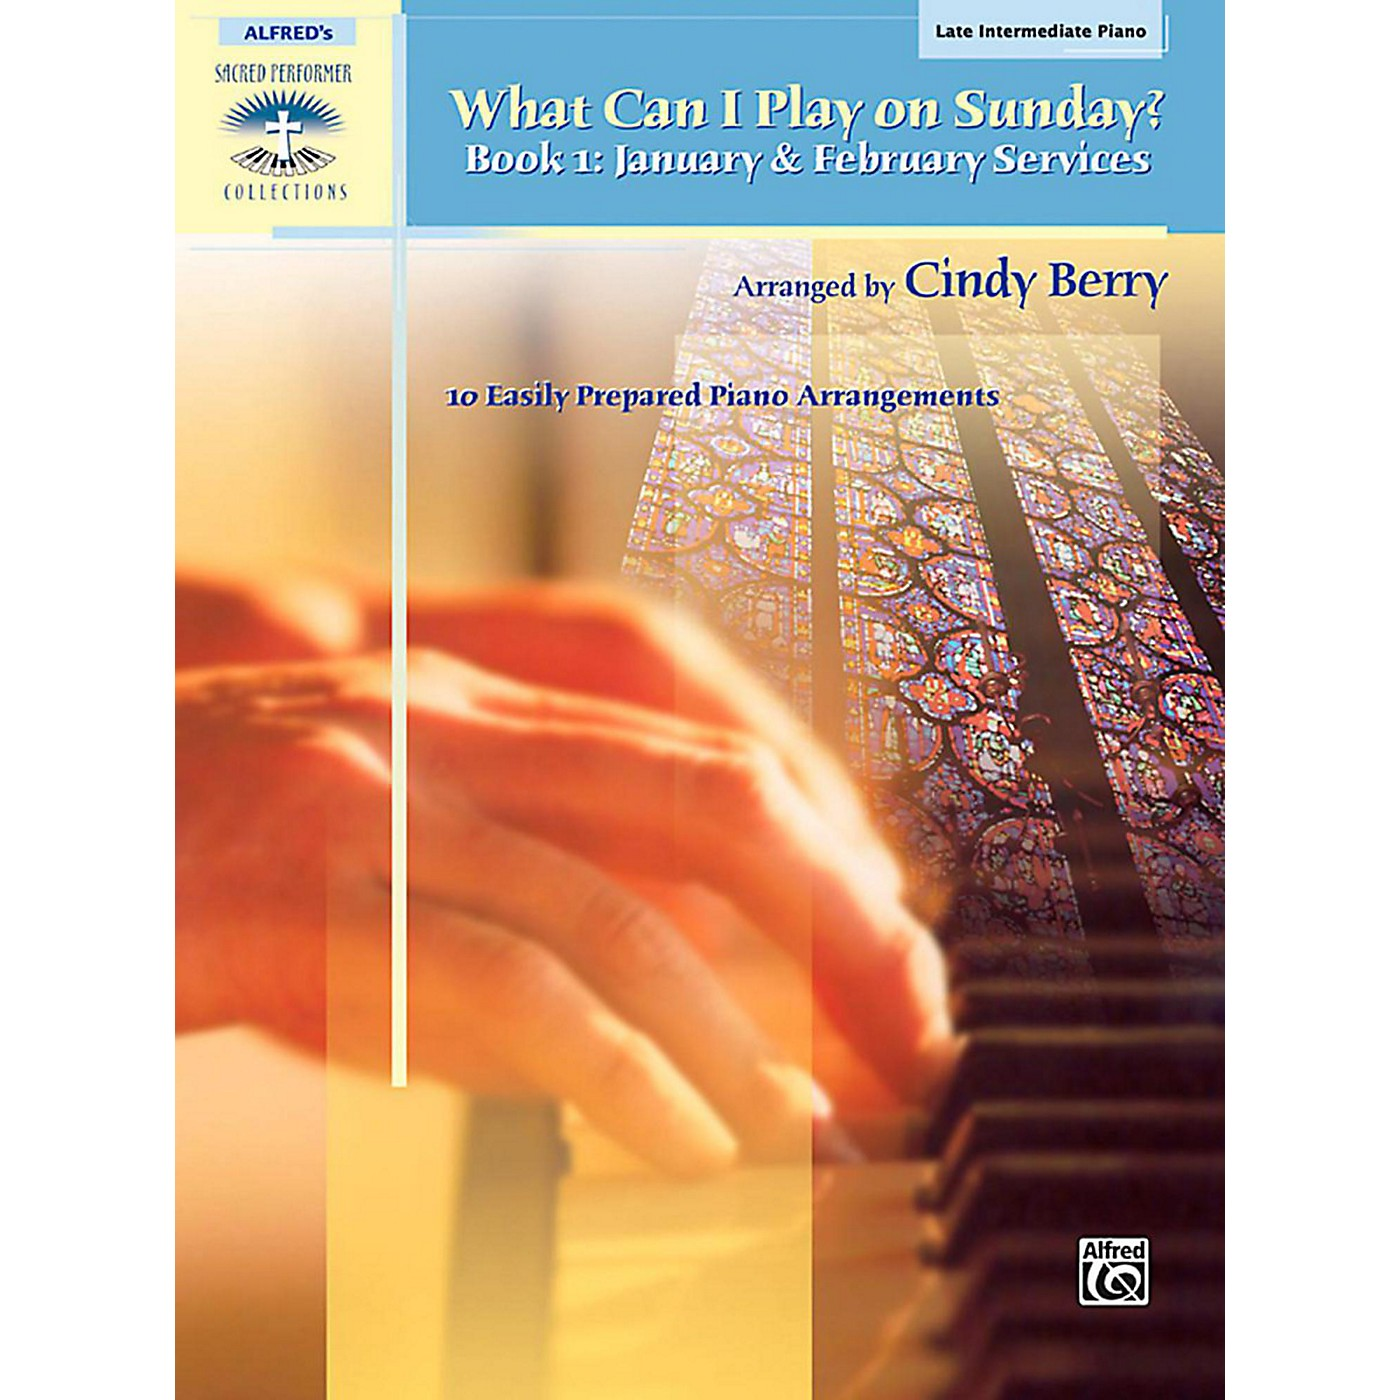 Alfred What Can I Play on Sunday? Book 1: January & February Services Late Intermediate Piano thumbnail